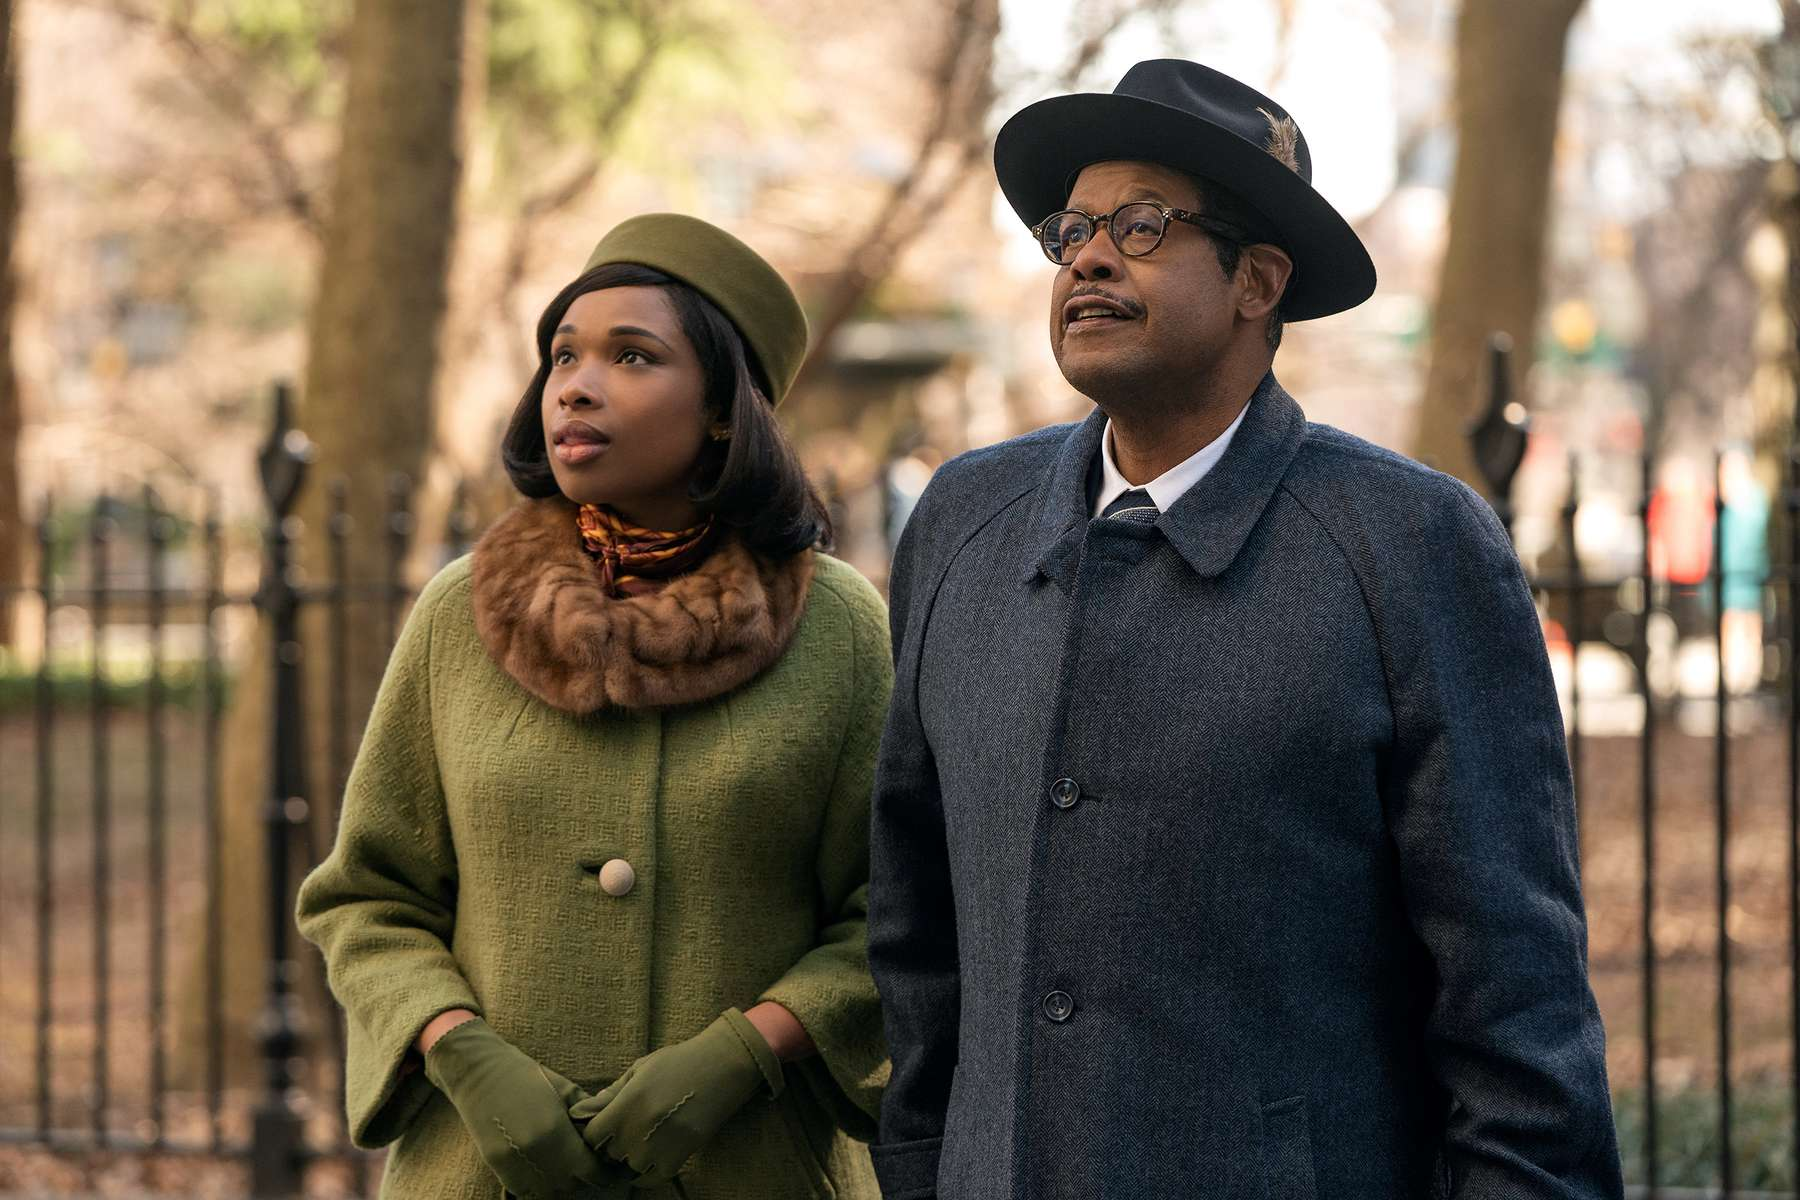 R_27620_RCJennifer Hudson stars as Aretha Franklin and Forest Whitaker as her father C.L. Franklin inRESPECT A Metro Goldwyn Mayer Pictures filmPhoto credit: Quantrell D. Colbert